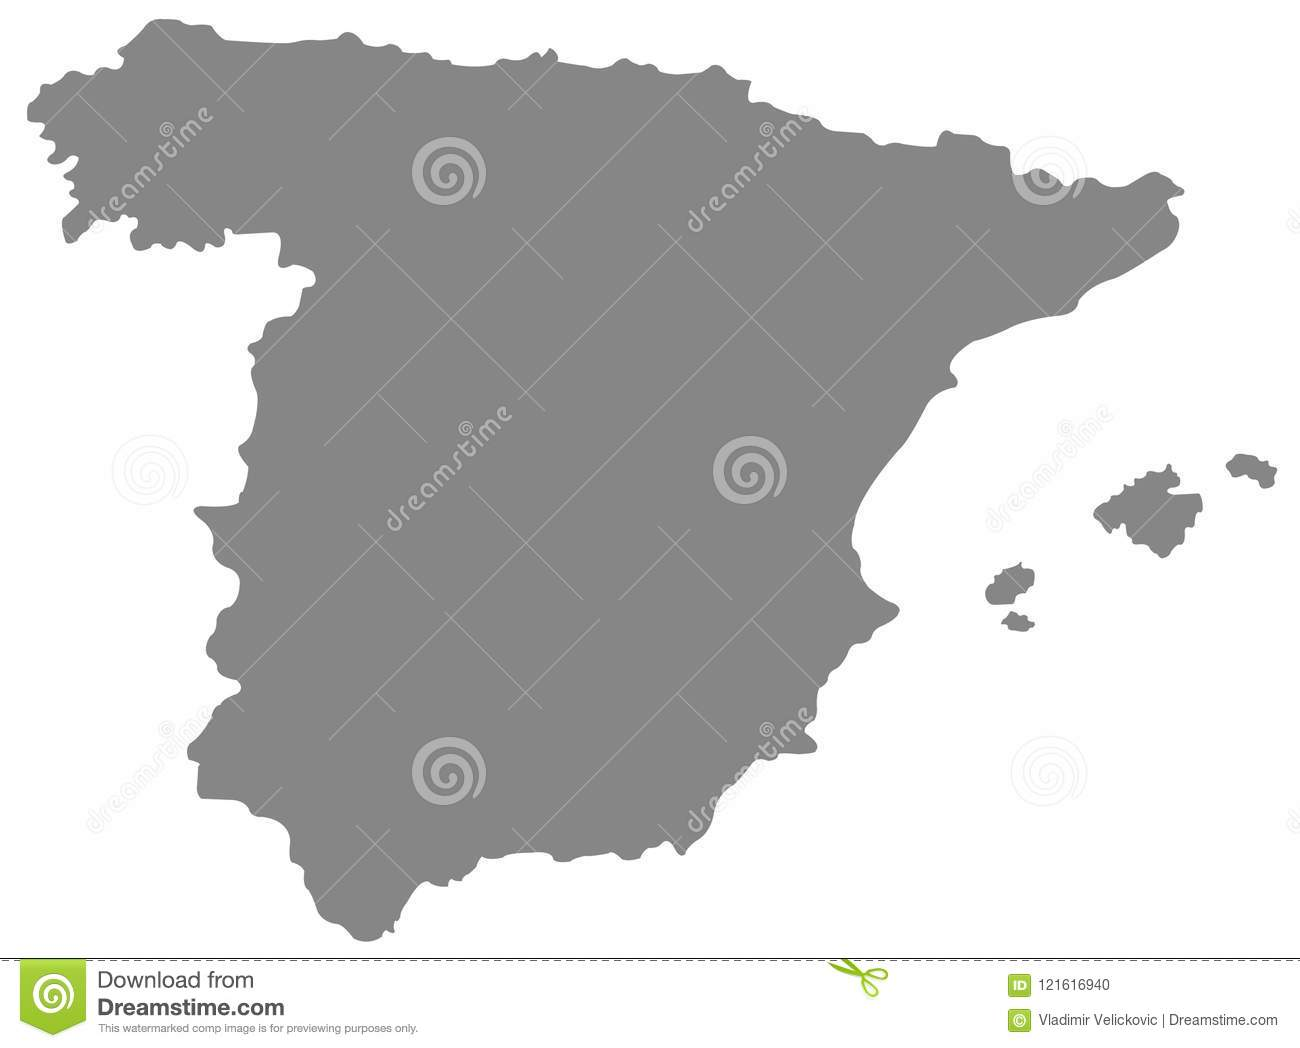 Peninsula In Europe Map.Spain Map Sovereign State On The Iberian Peninsula In Europe Stock